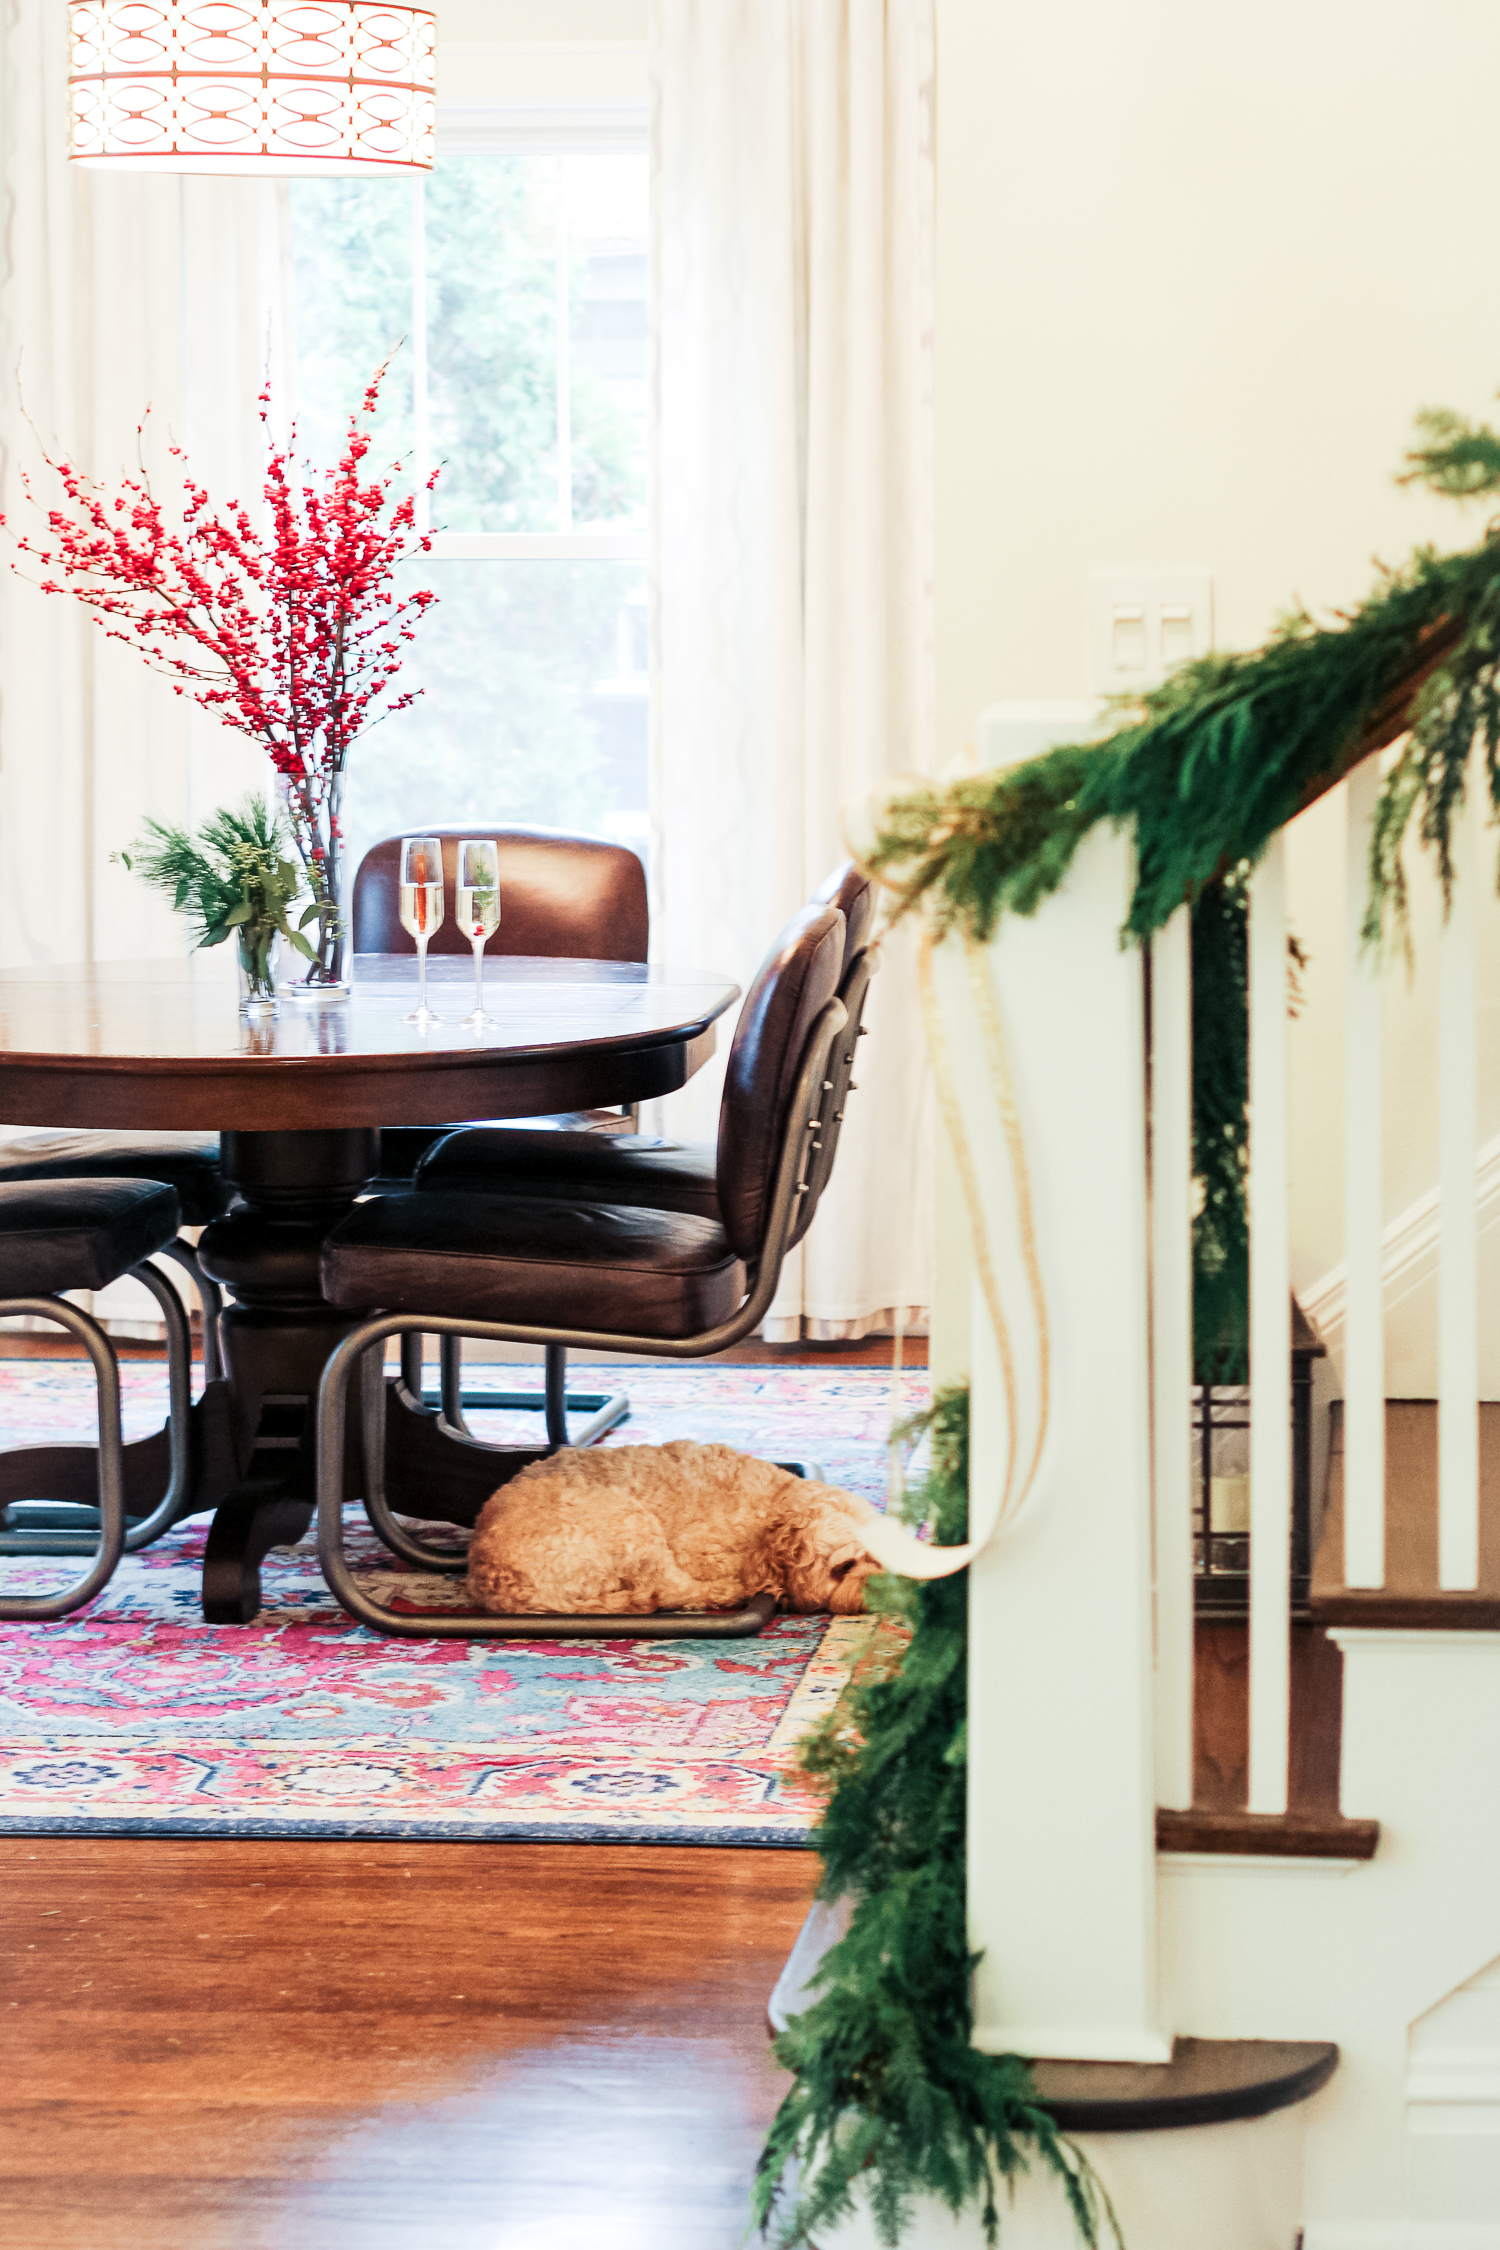 Rearrange Furniture - A lot of us have to move furniture around anyway to make room for a Christmas tree, but why not do it for fun? Sometimes a little rearranging can give a room a whole new look! Also, think about seating arrangements when entertaining. Will you need to borrow chairs from the dining room? Think about where people will gather and make sure there's a space for everyone!